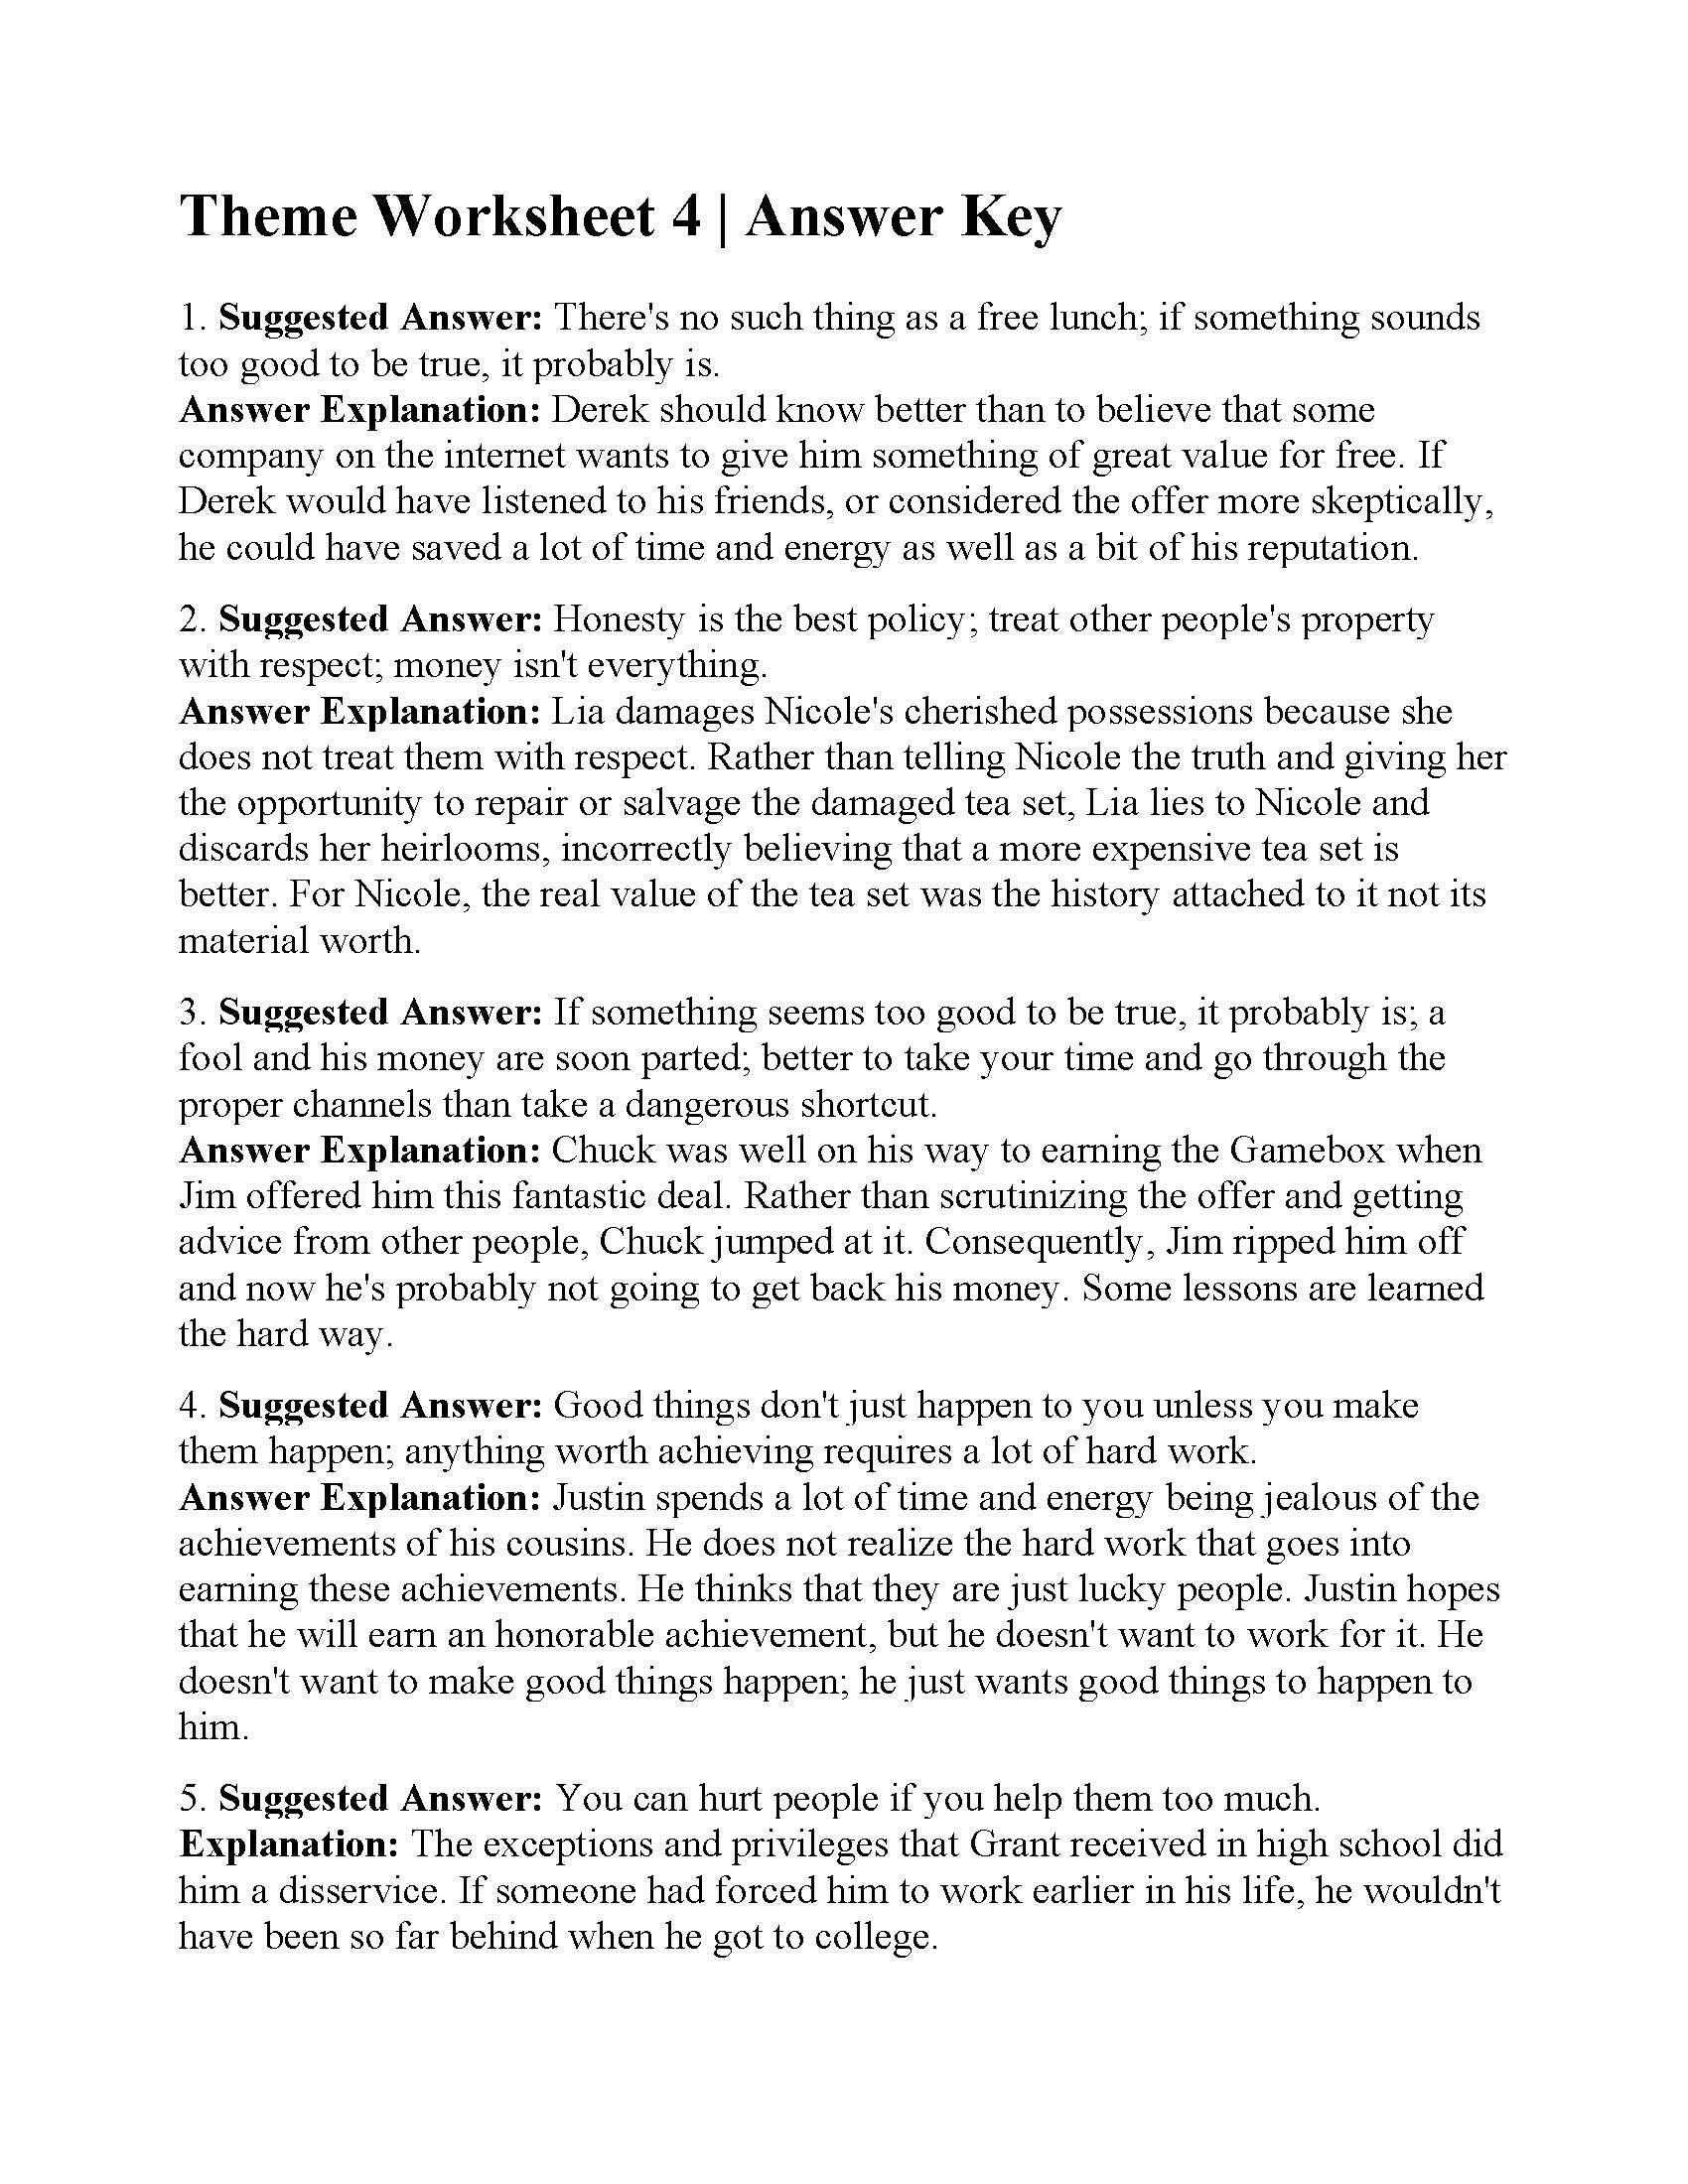 5th Grade theme Worksheets This is the Answer Key for the theme Worksheet 4